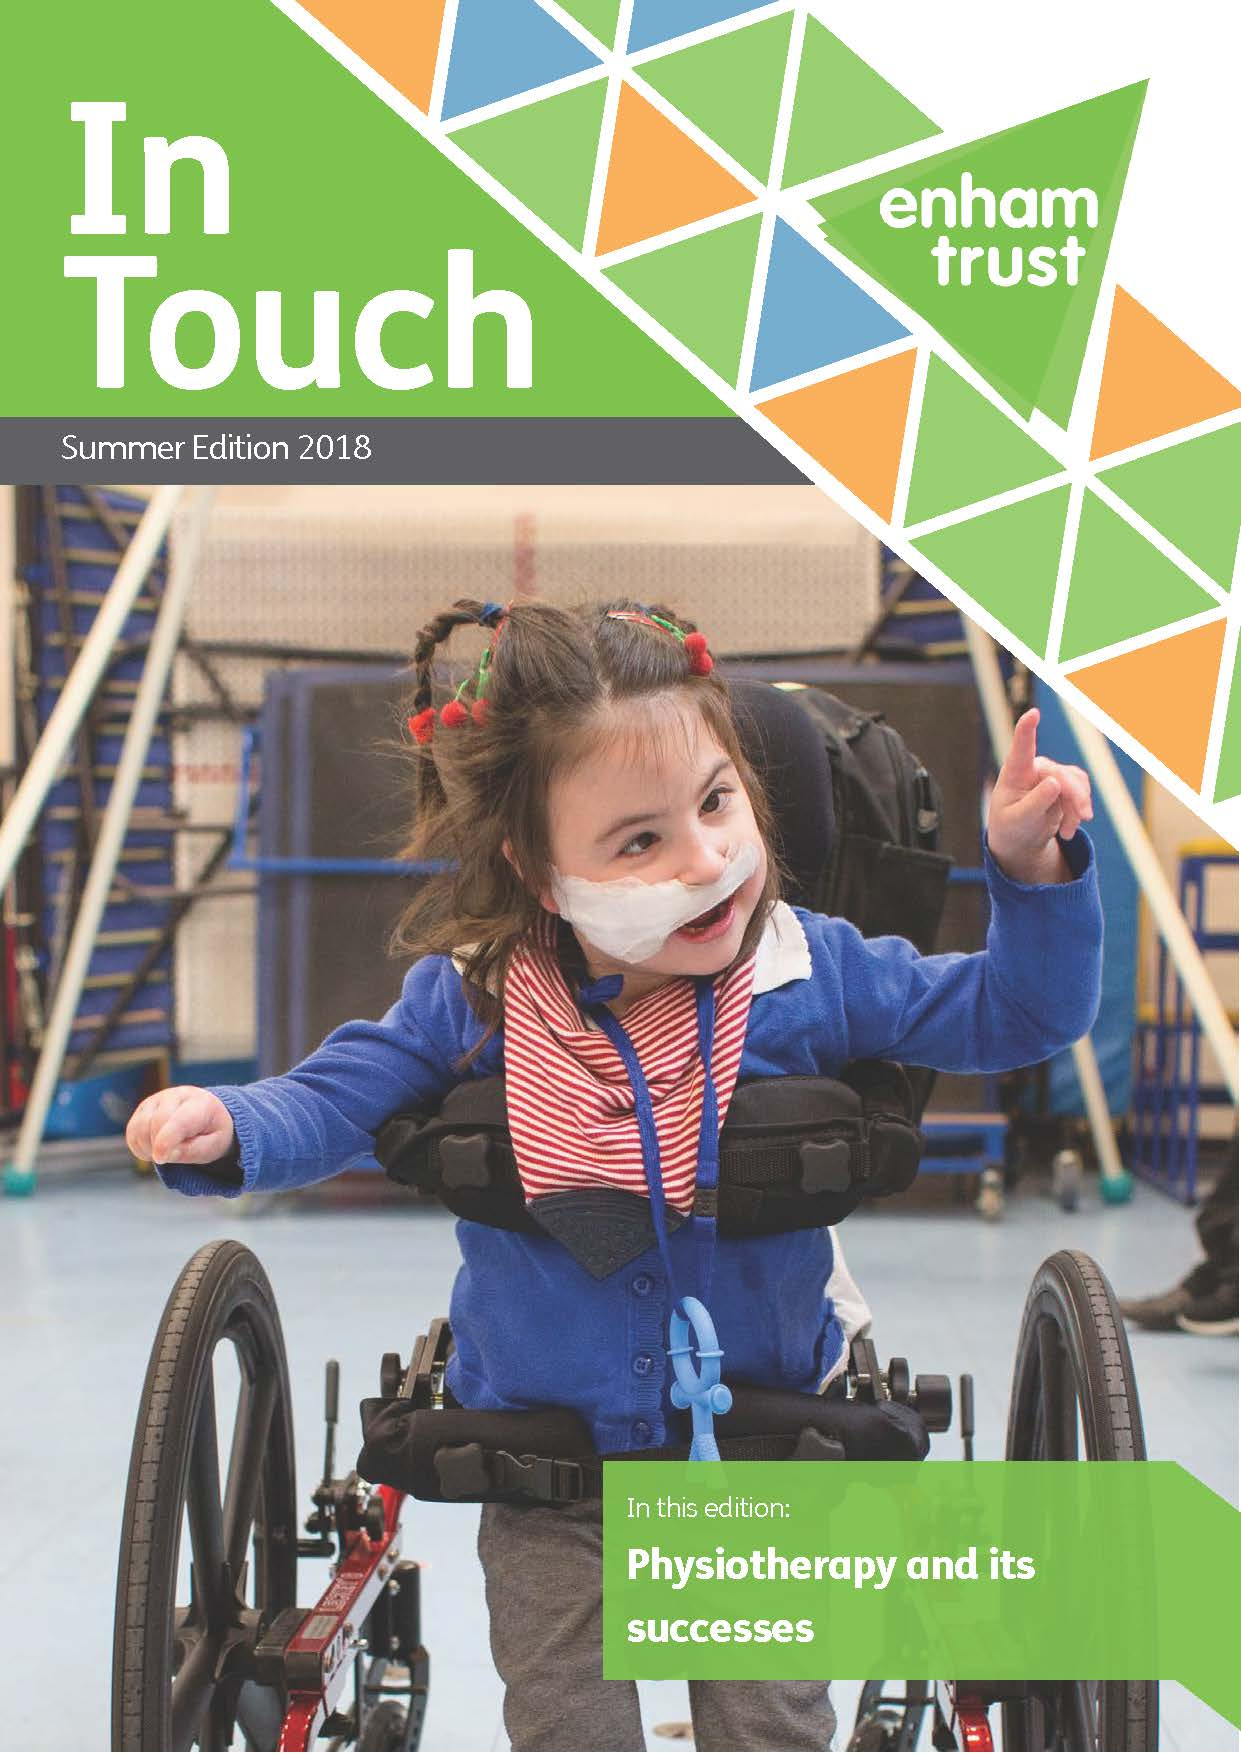 Download the Summer edition of In Touch